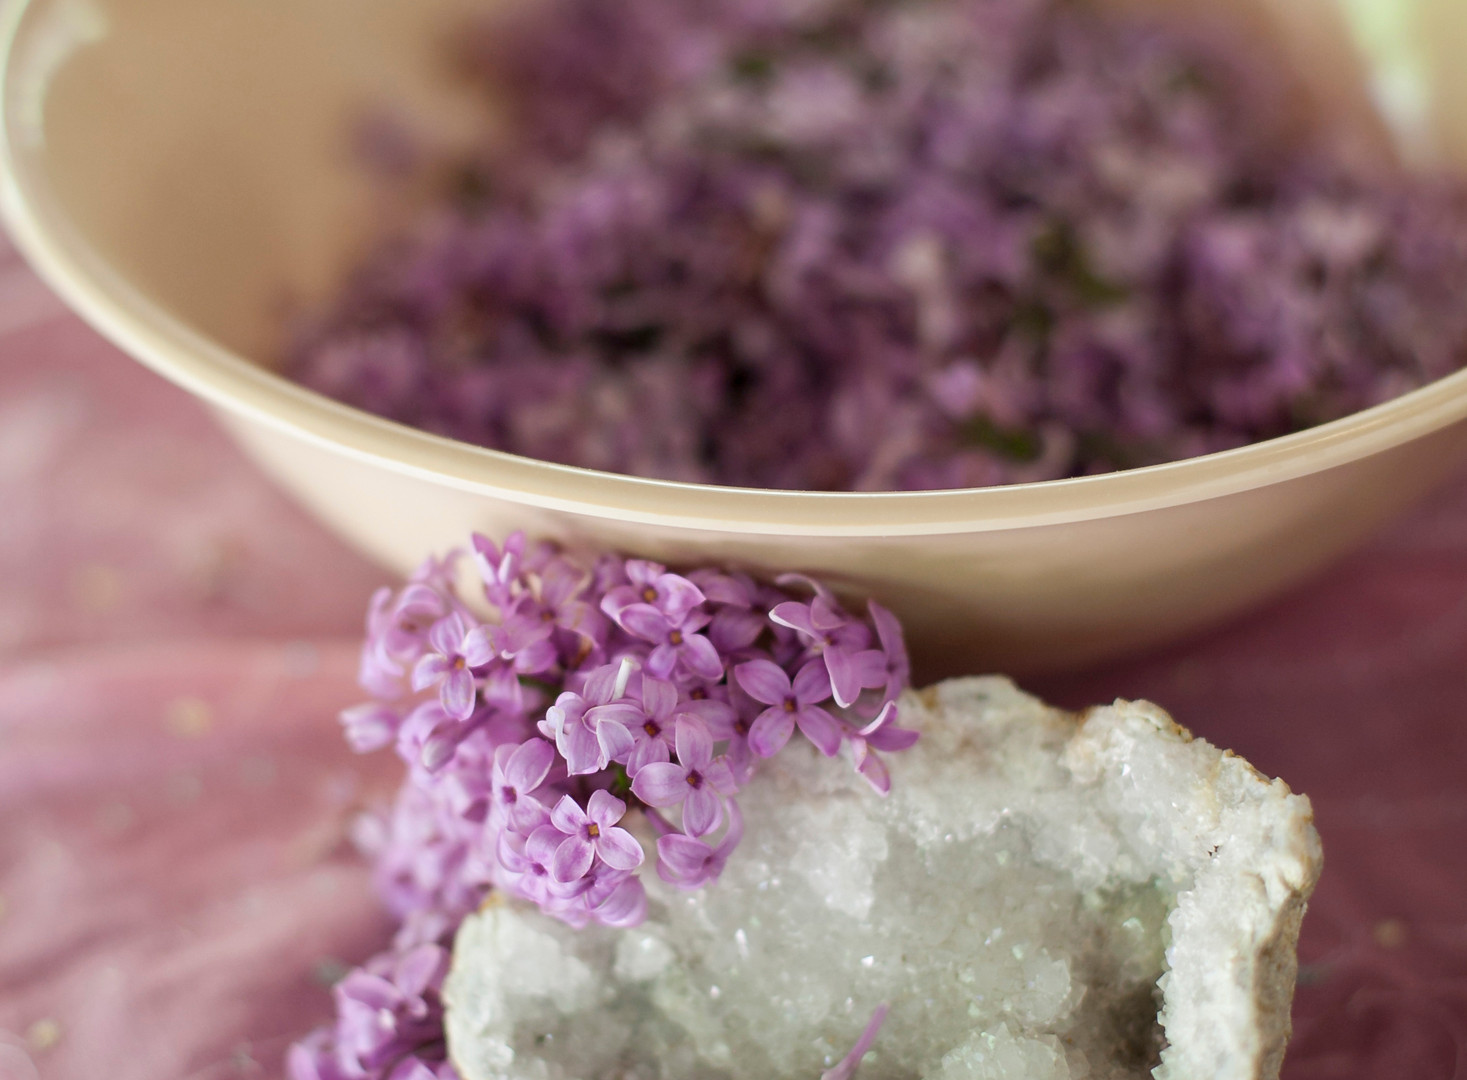 lilacs and quartz.jpg